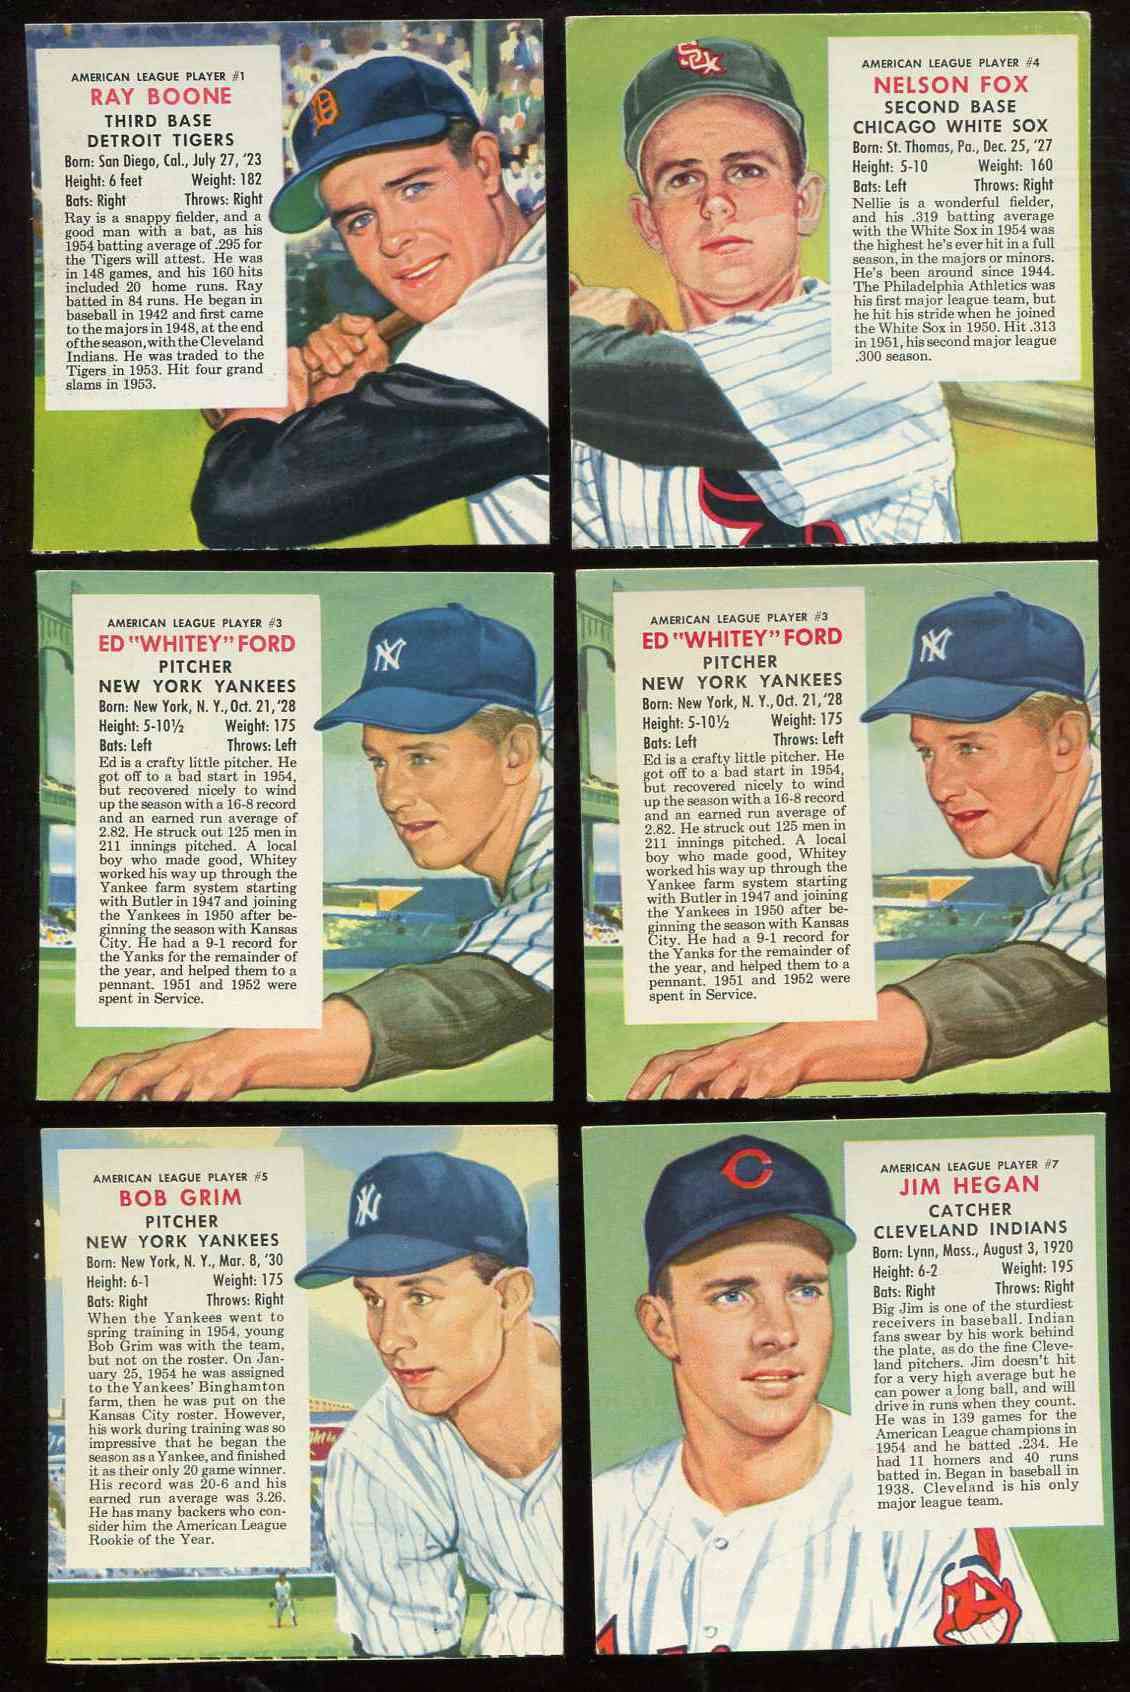 1955 Red Man #AL.4 Nellie Fox [#x] (White Sox) Baseball cards value